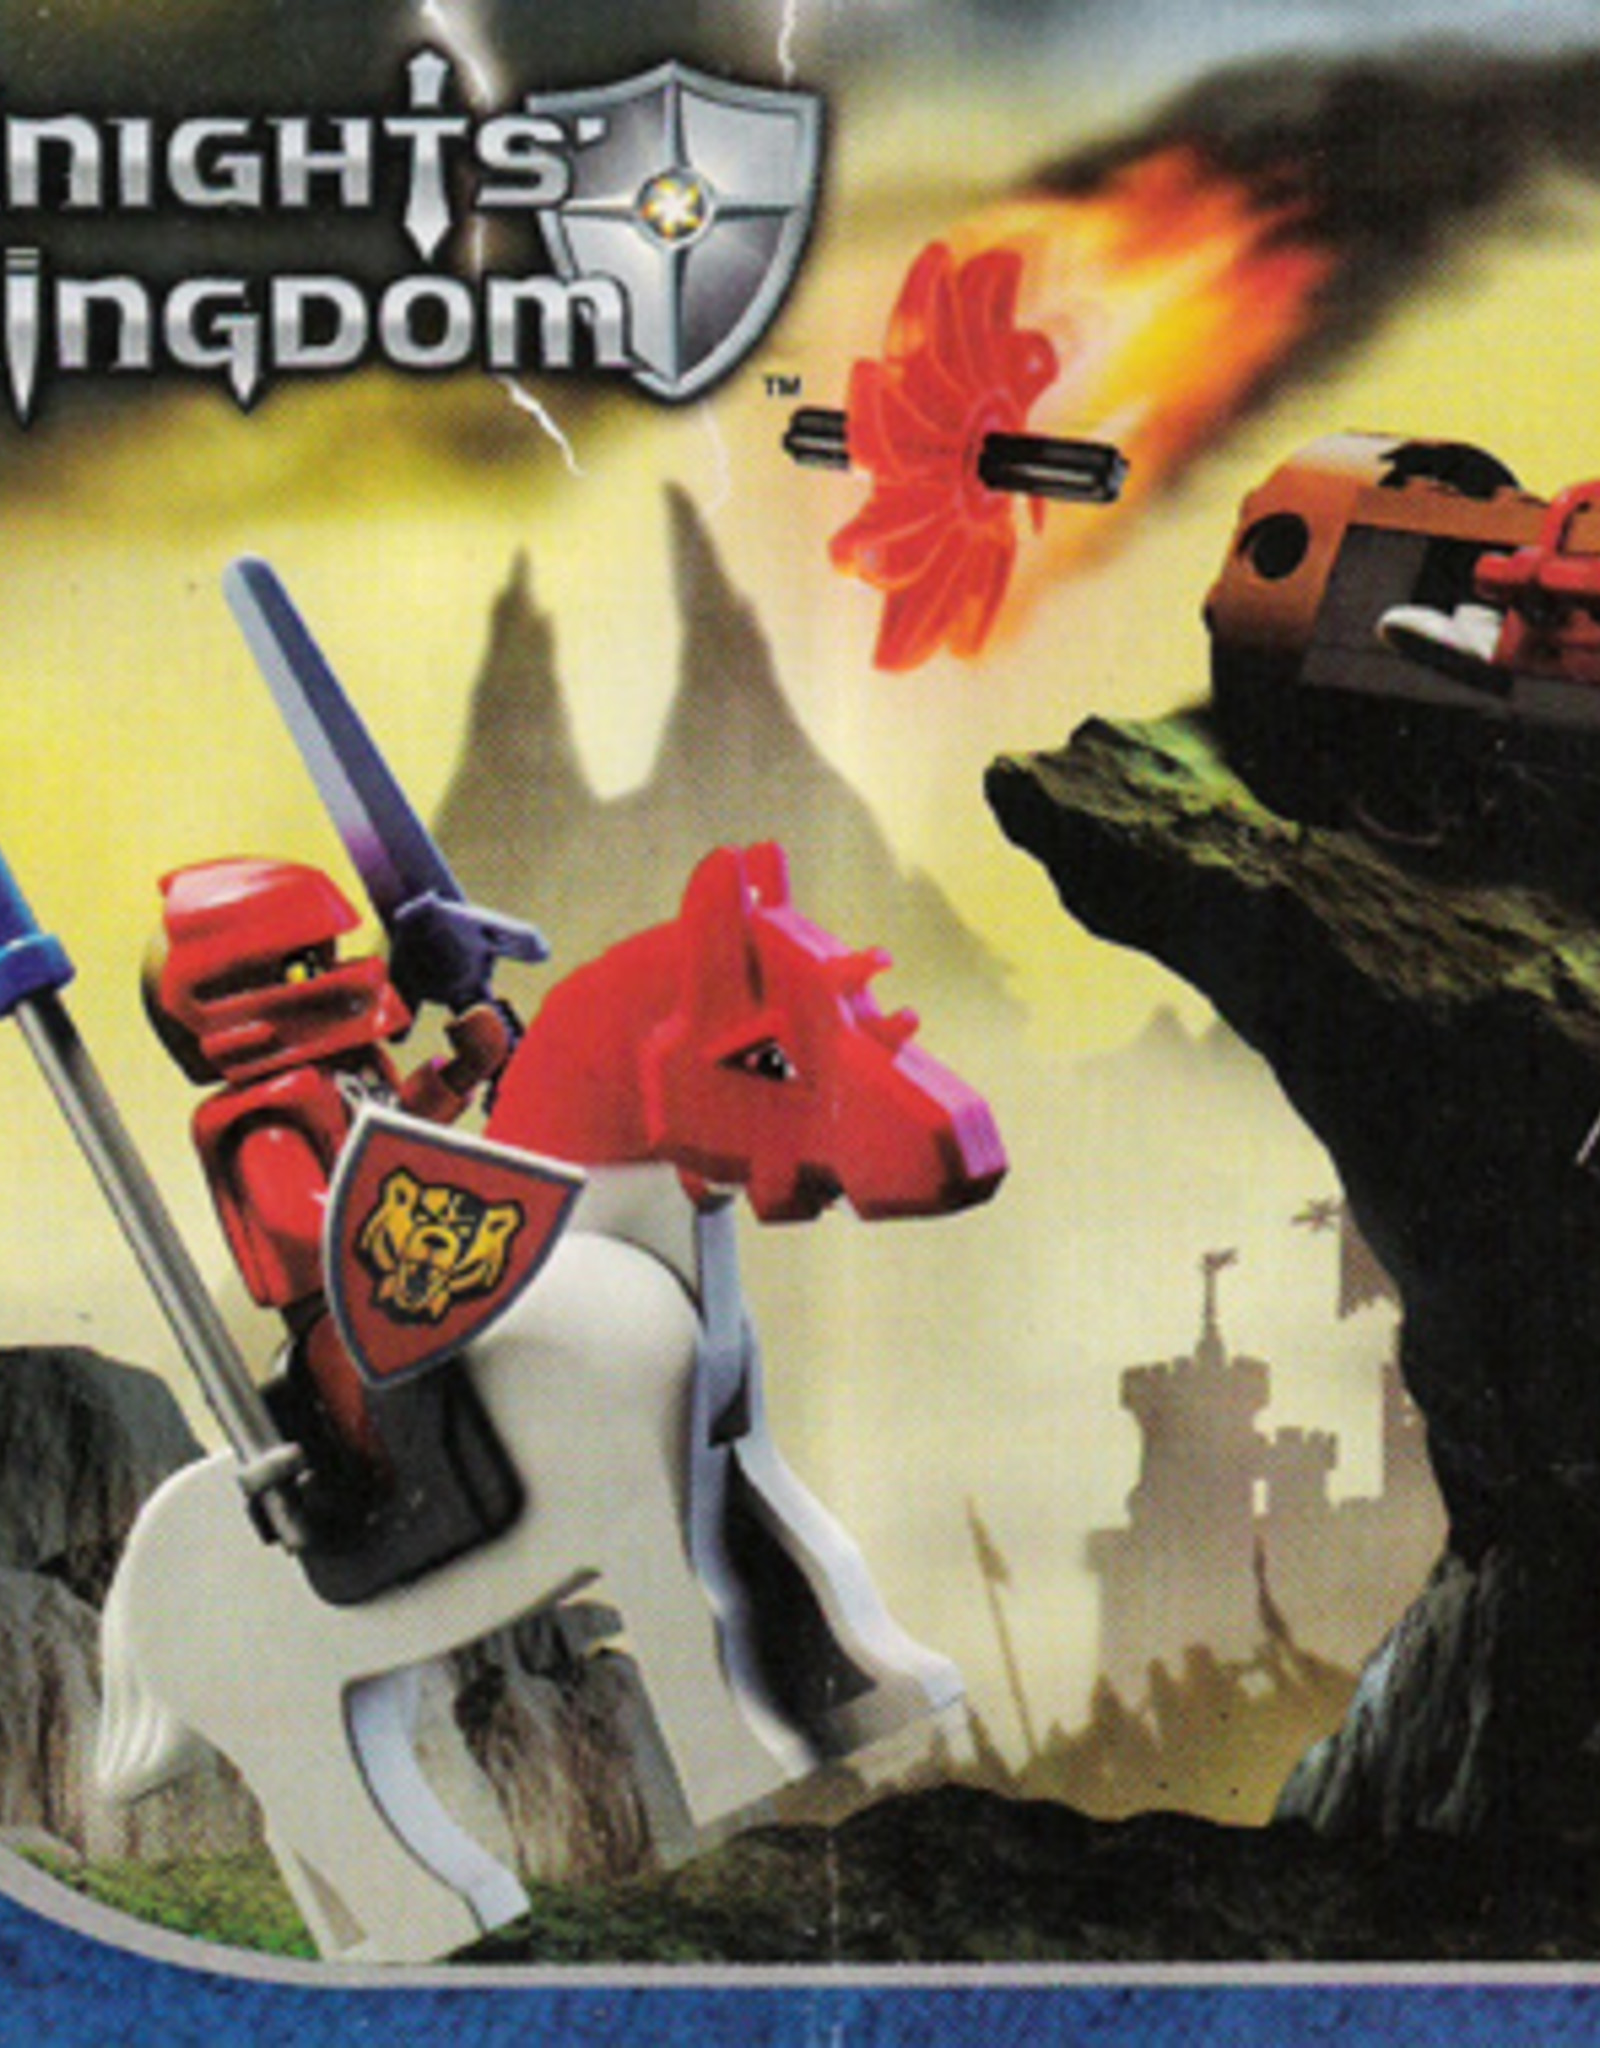 LEGO LEGO 8873 Fireball Katapult KNIGHTS KINGDOM